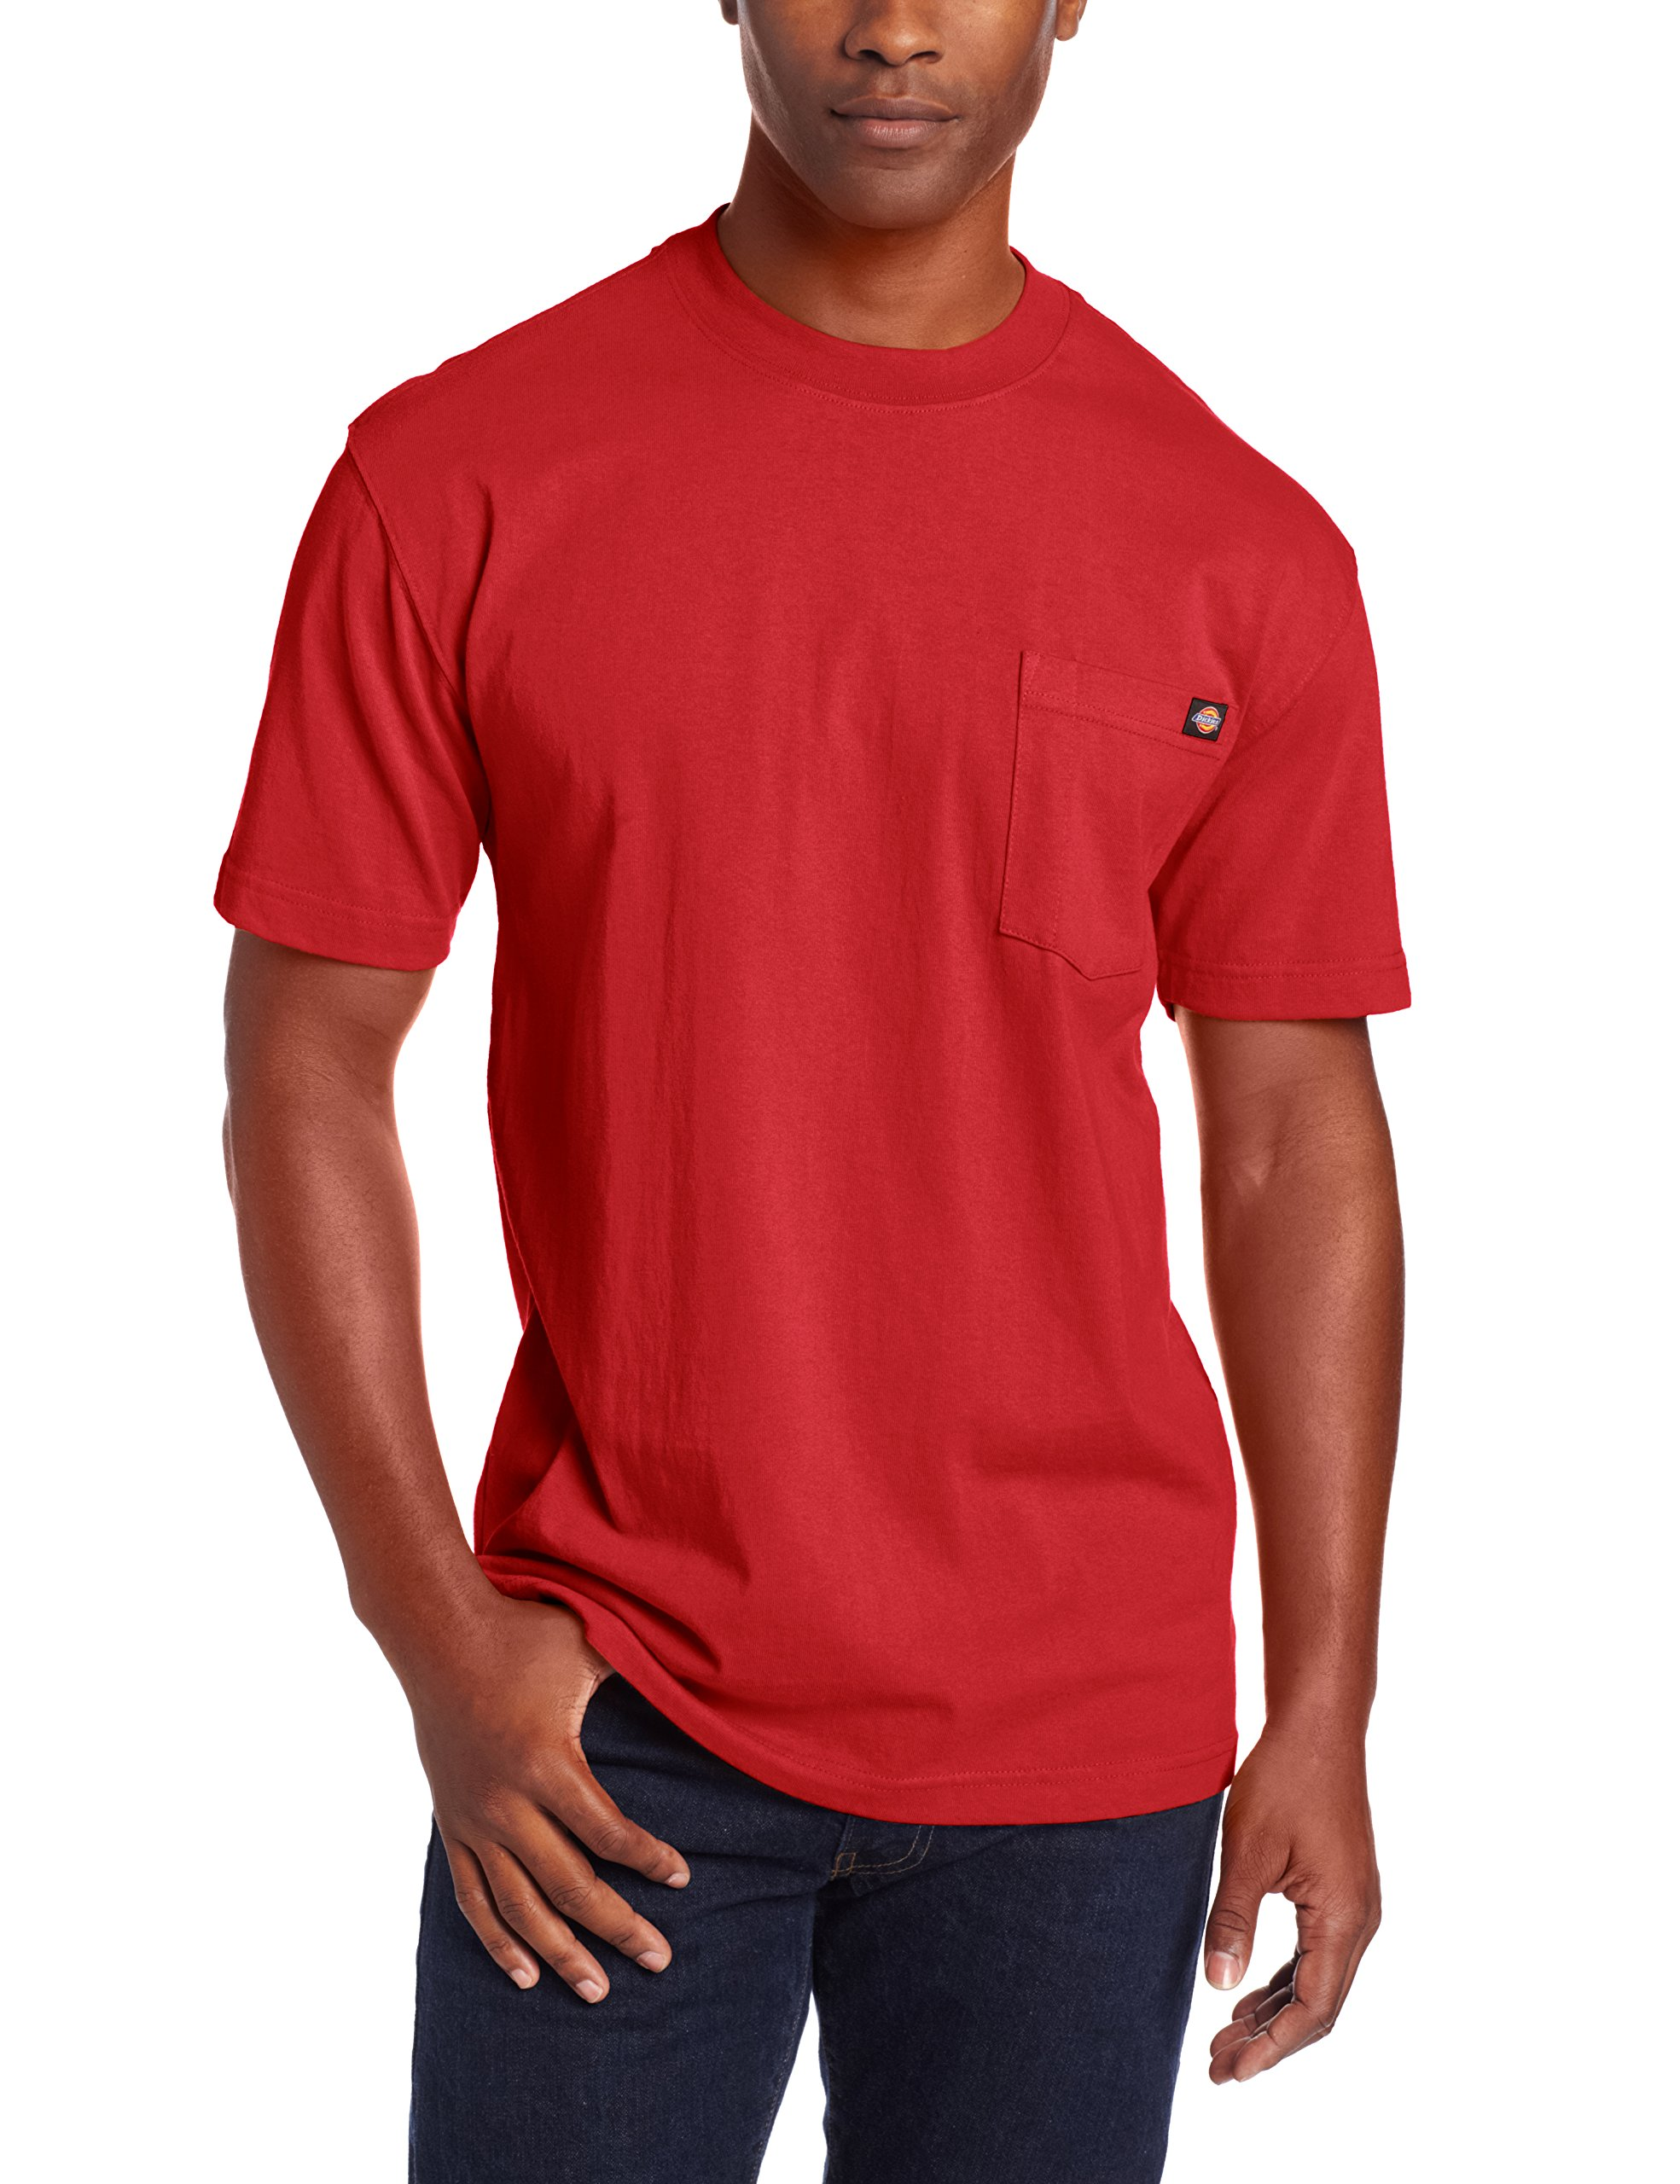 Dickie's Men's Short Sleeve Heavyweight Crew Neck Pocket T-Shirt, English Red, X-Large